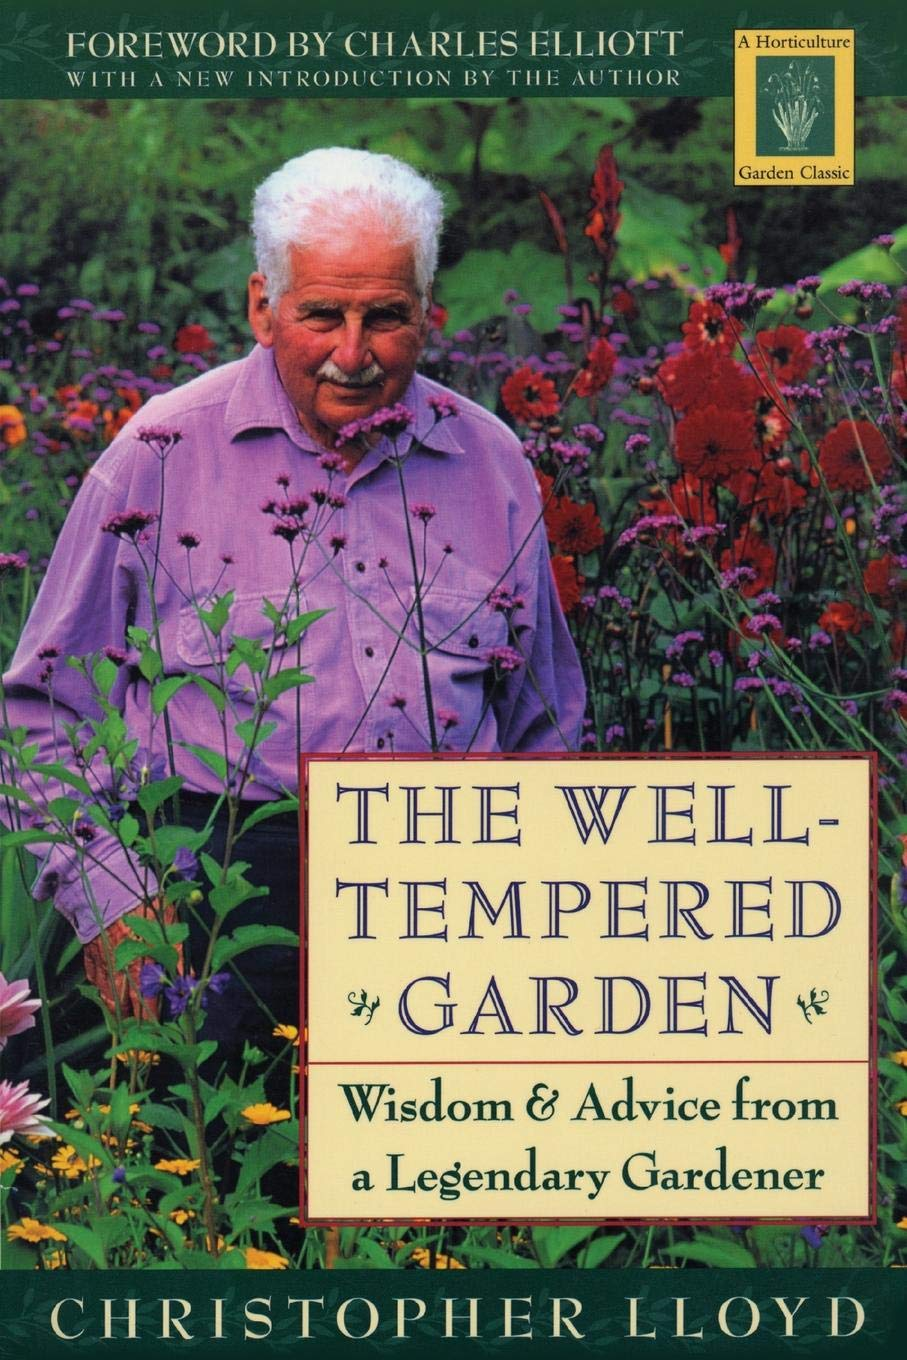 The Well-Tempered Garden: Wisdom and Advice from a Legendary Gardener by Christopher Lloyd